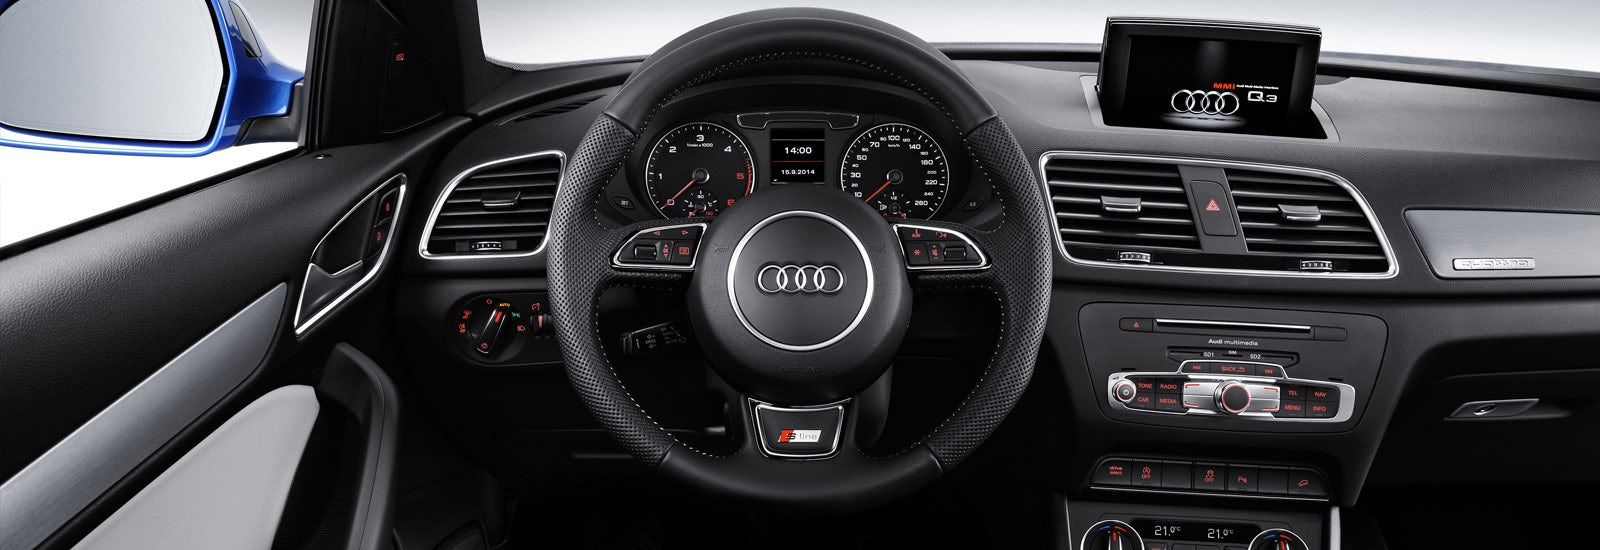 2019 Audi Q4 SUV coupe price, specs and release date | carwow